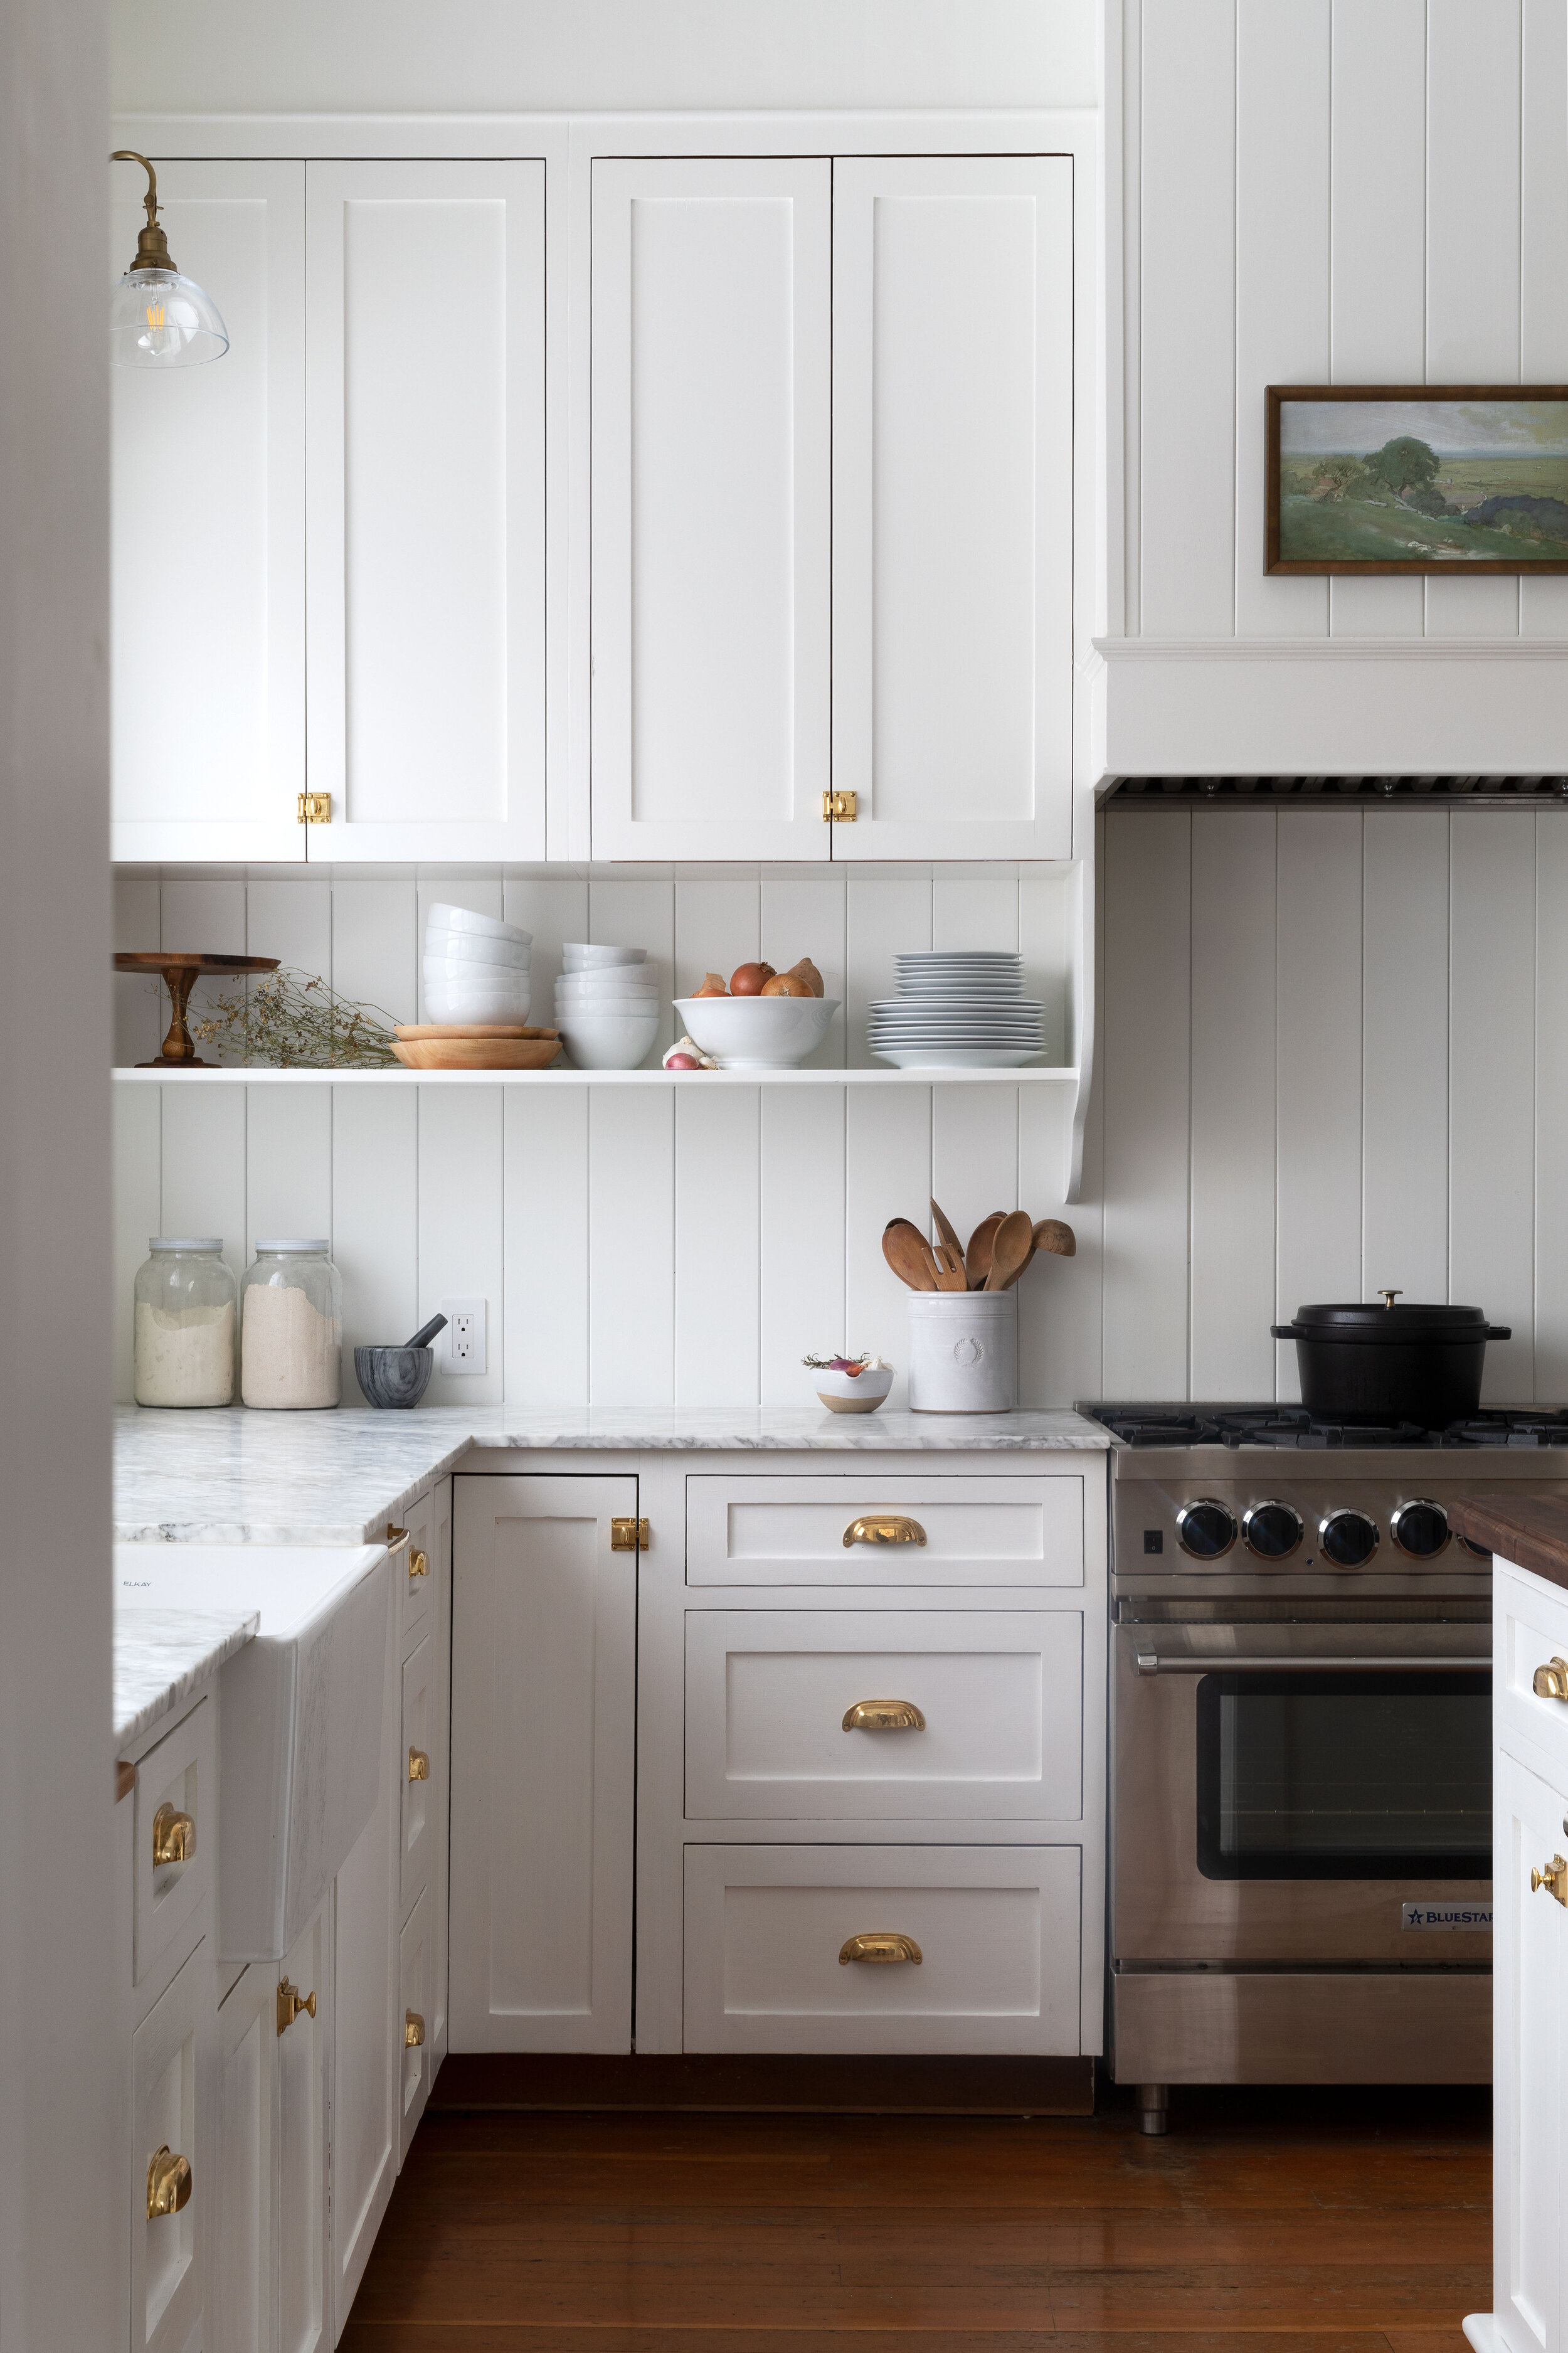 The Grit and Polish - Farmhouse Country Kitchen Reveal 3.0 15 web.jpg